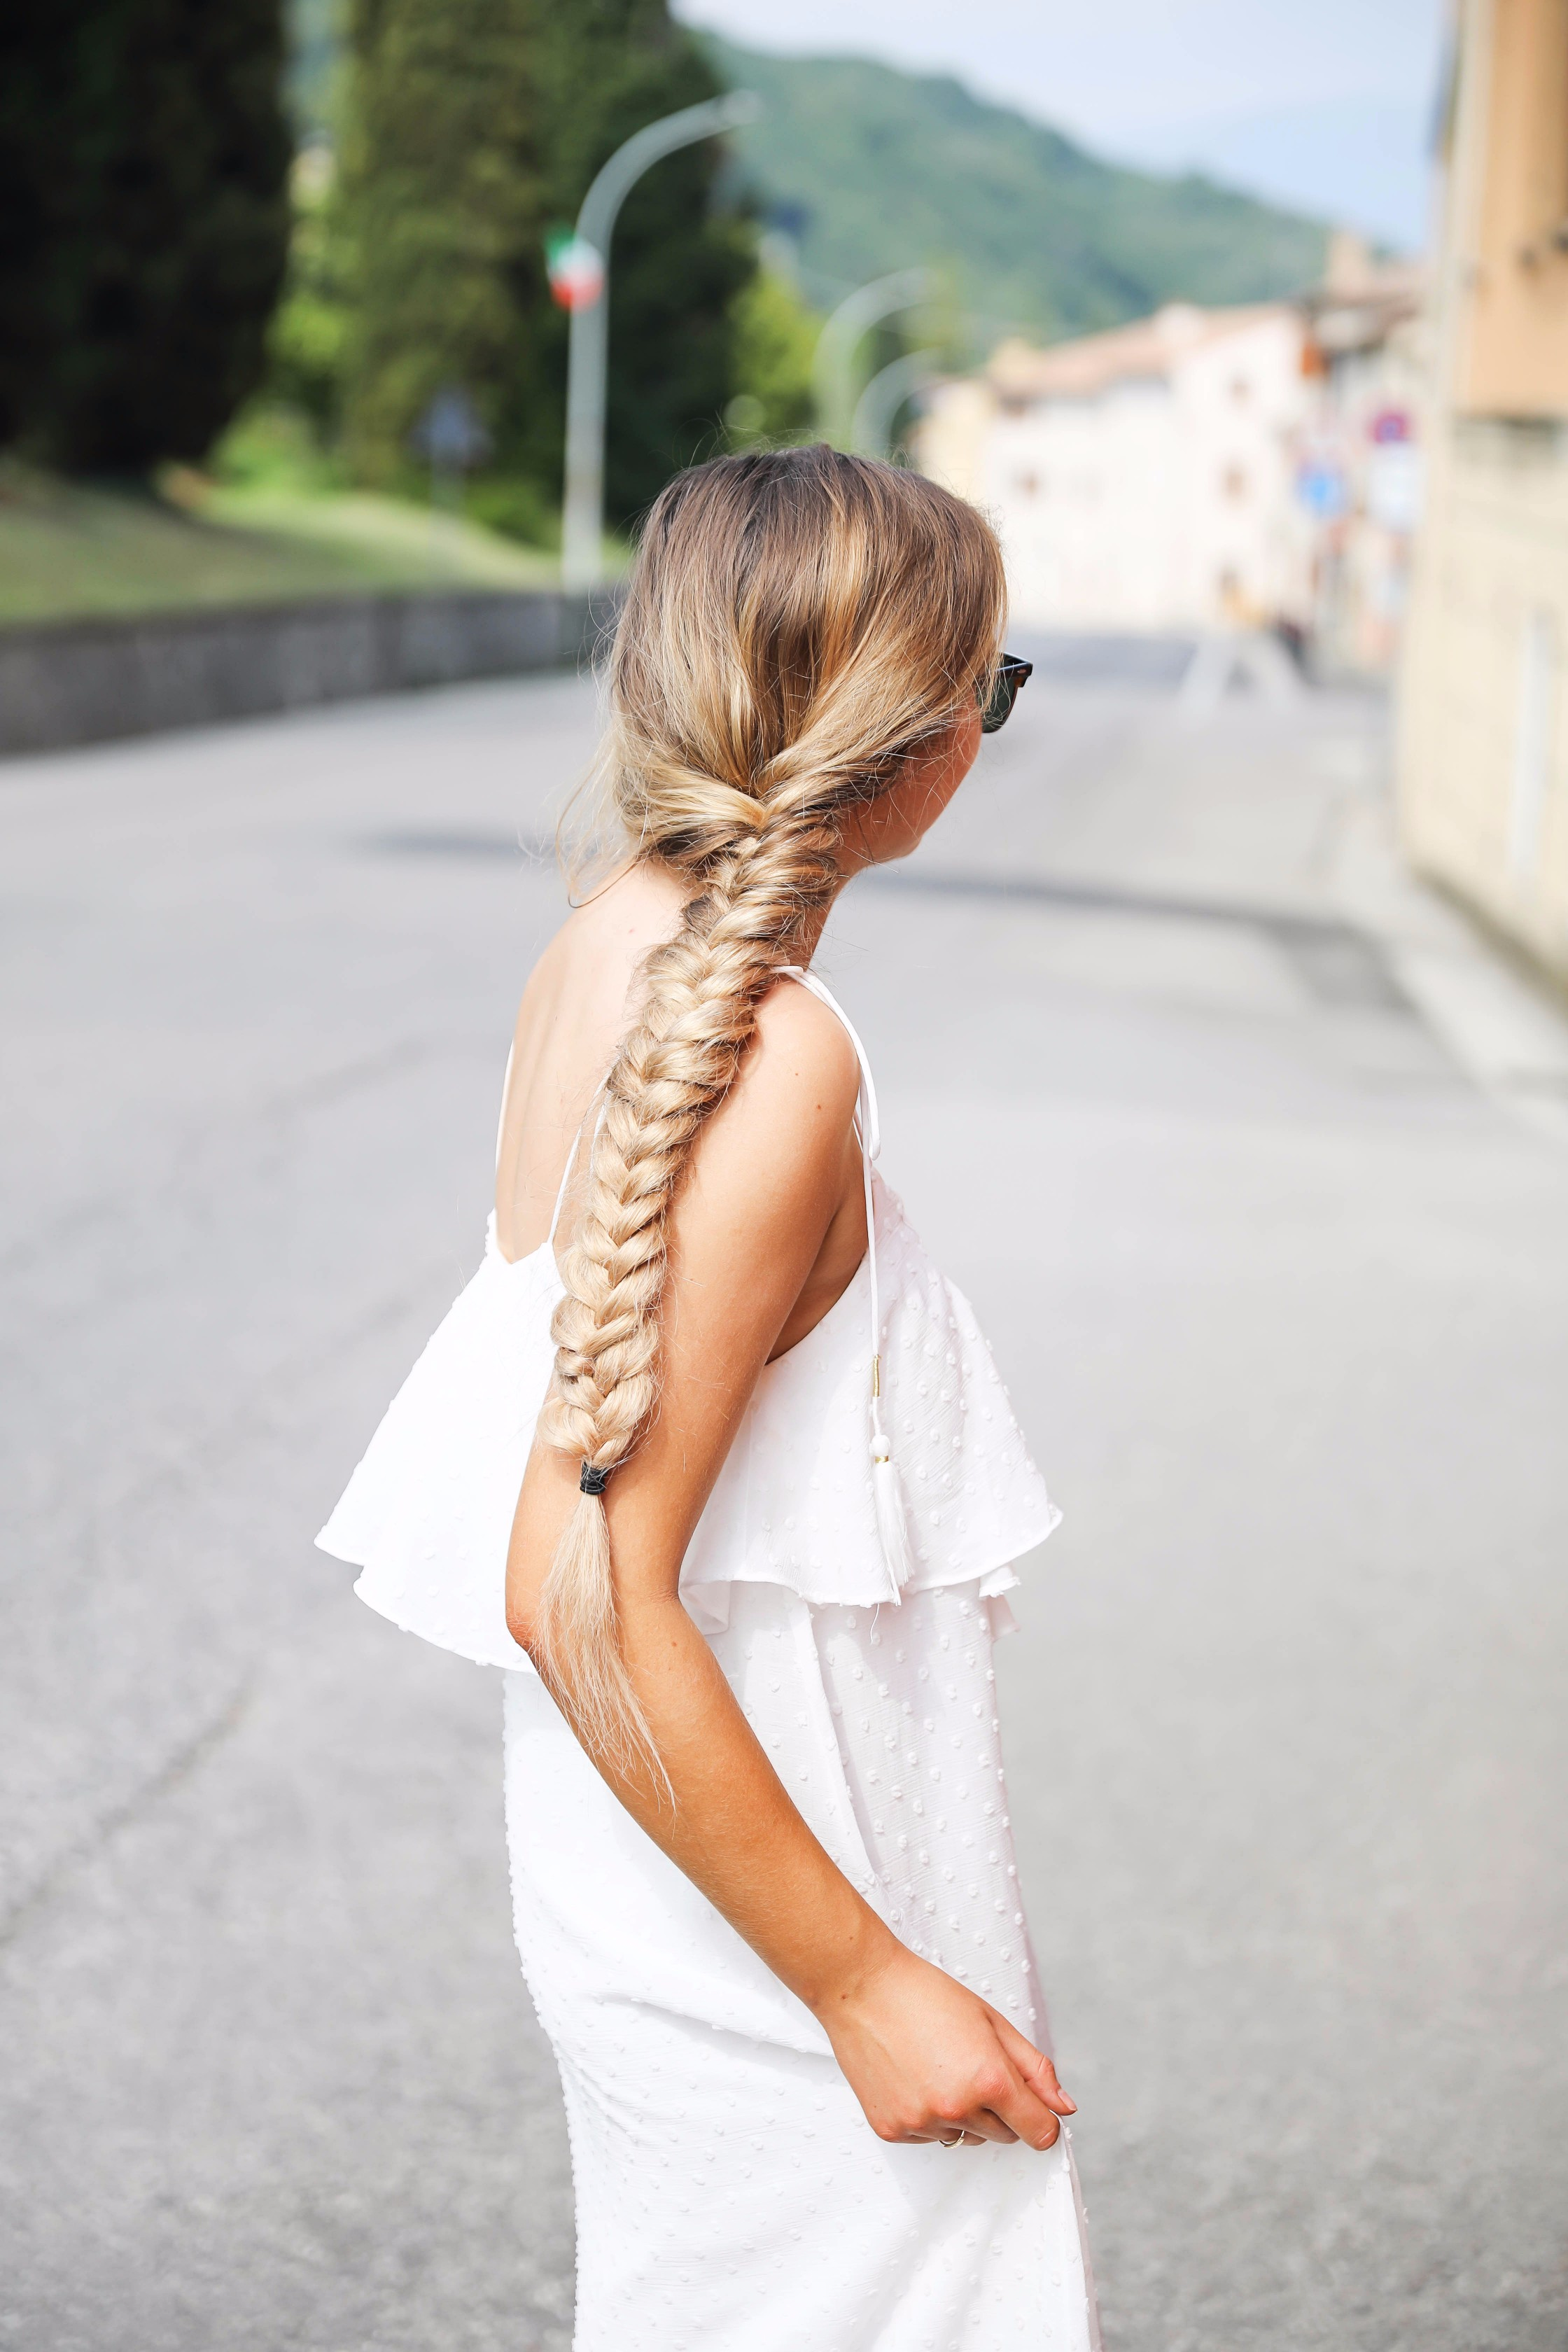 White flowy maxi dress with long fishtail braid in Paderno del Grappa, Italy by fashion blogger Lauren Lindmark daily dose of charm dailydoseofcharm.com